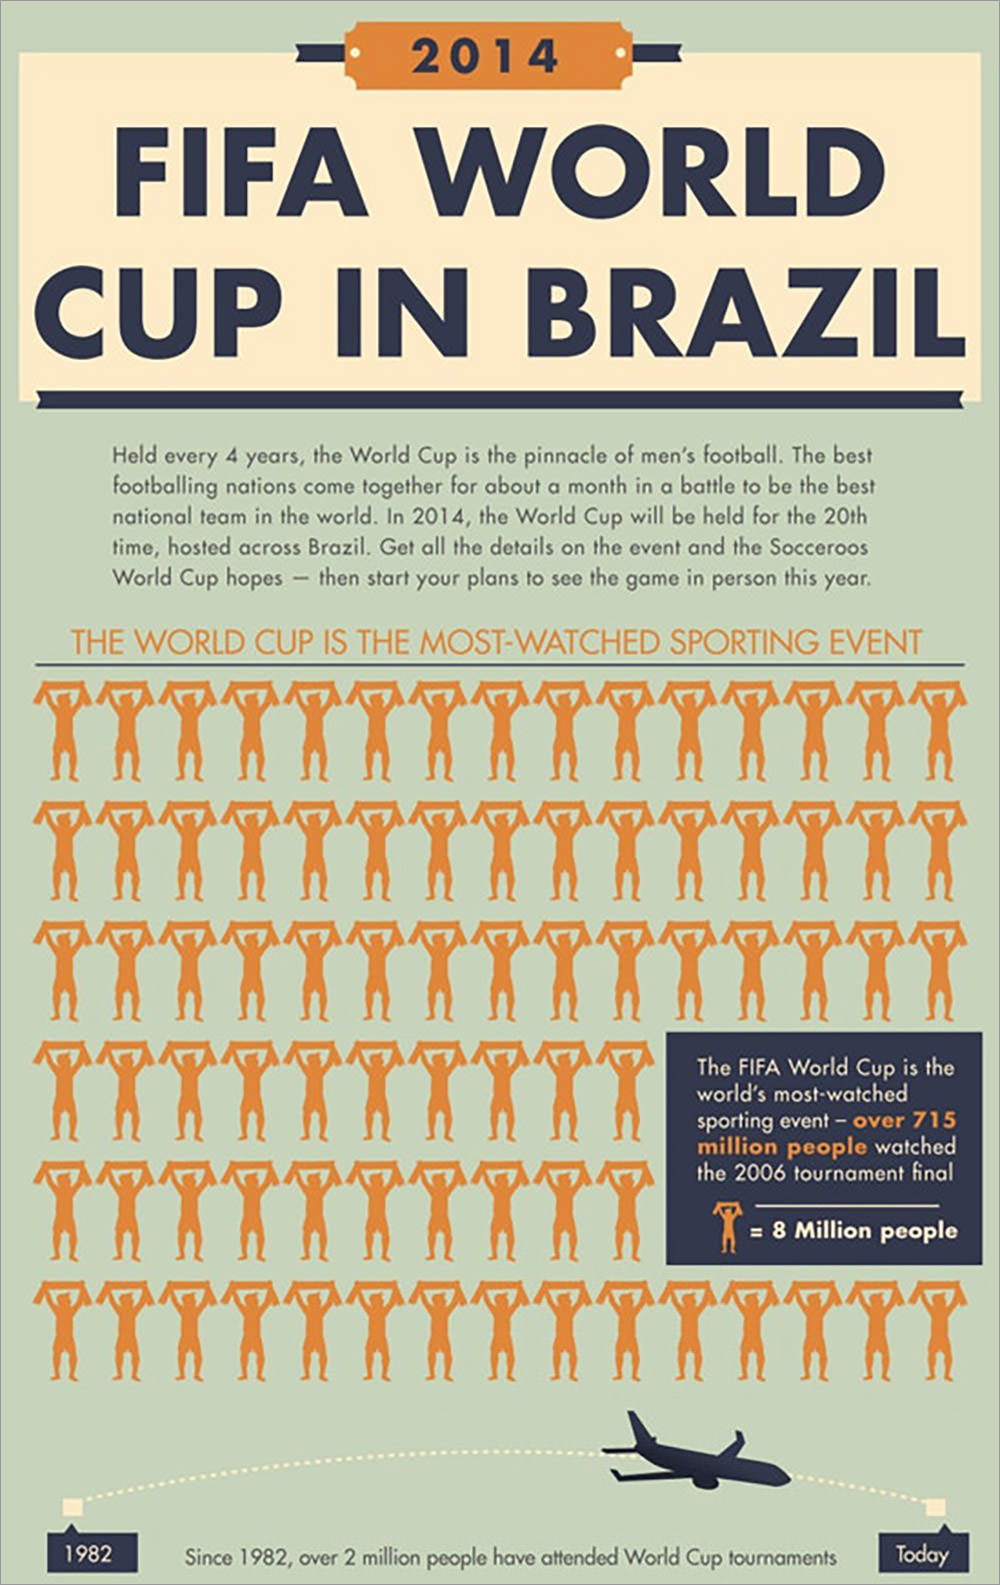 The 2014 World Cup In Brazil [Infographic